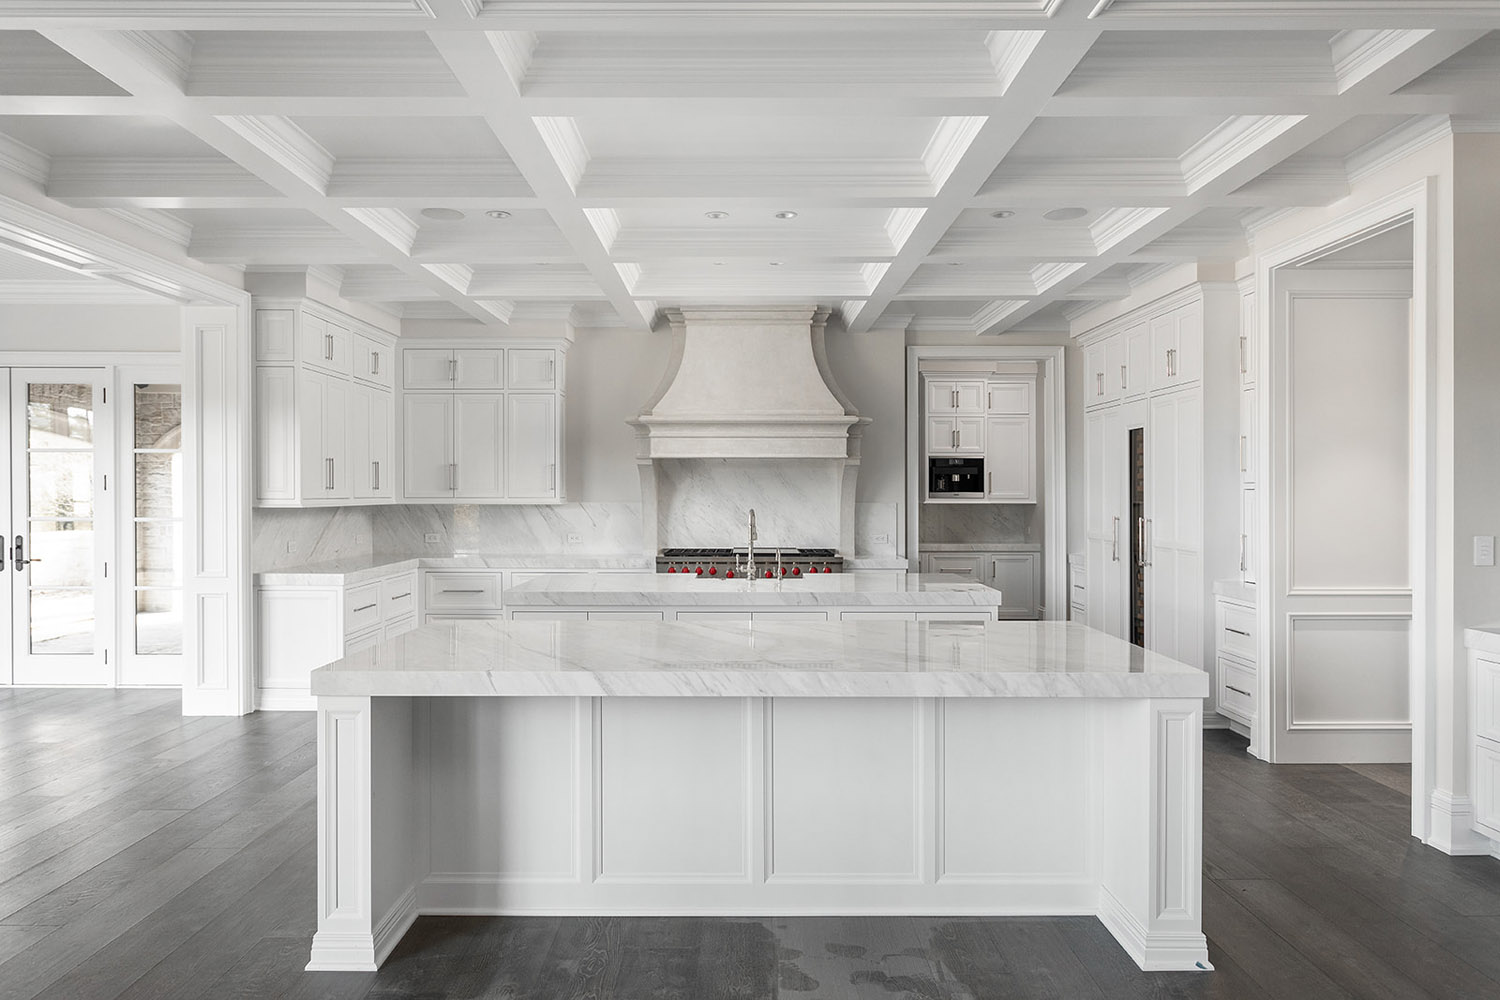 custom built kitchen with white cabinets and wood floors